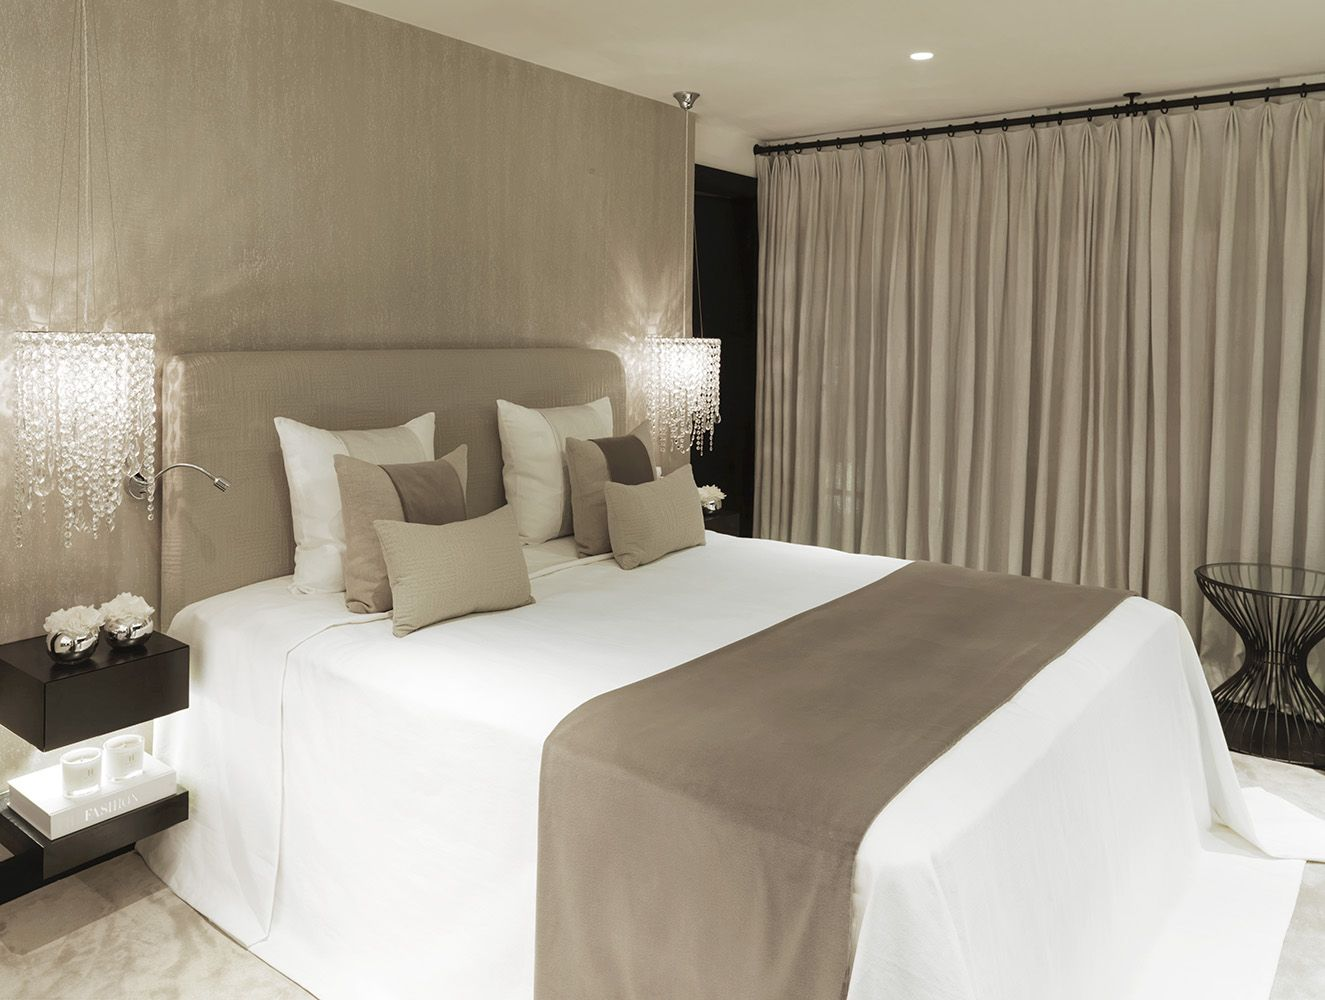 Soft Taupe And White With Black Accents Contemporary